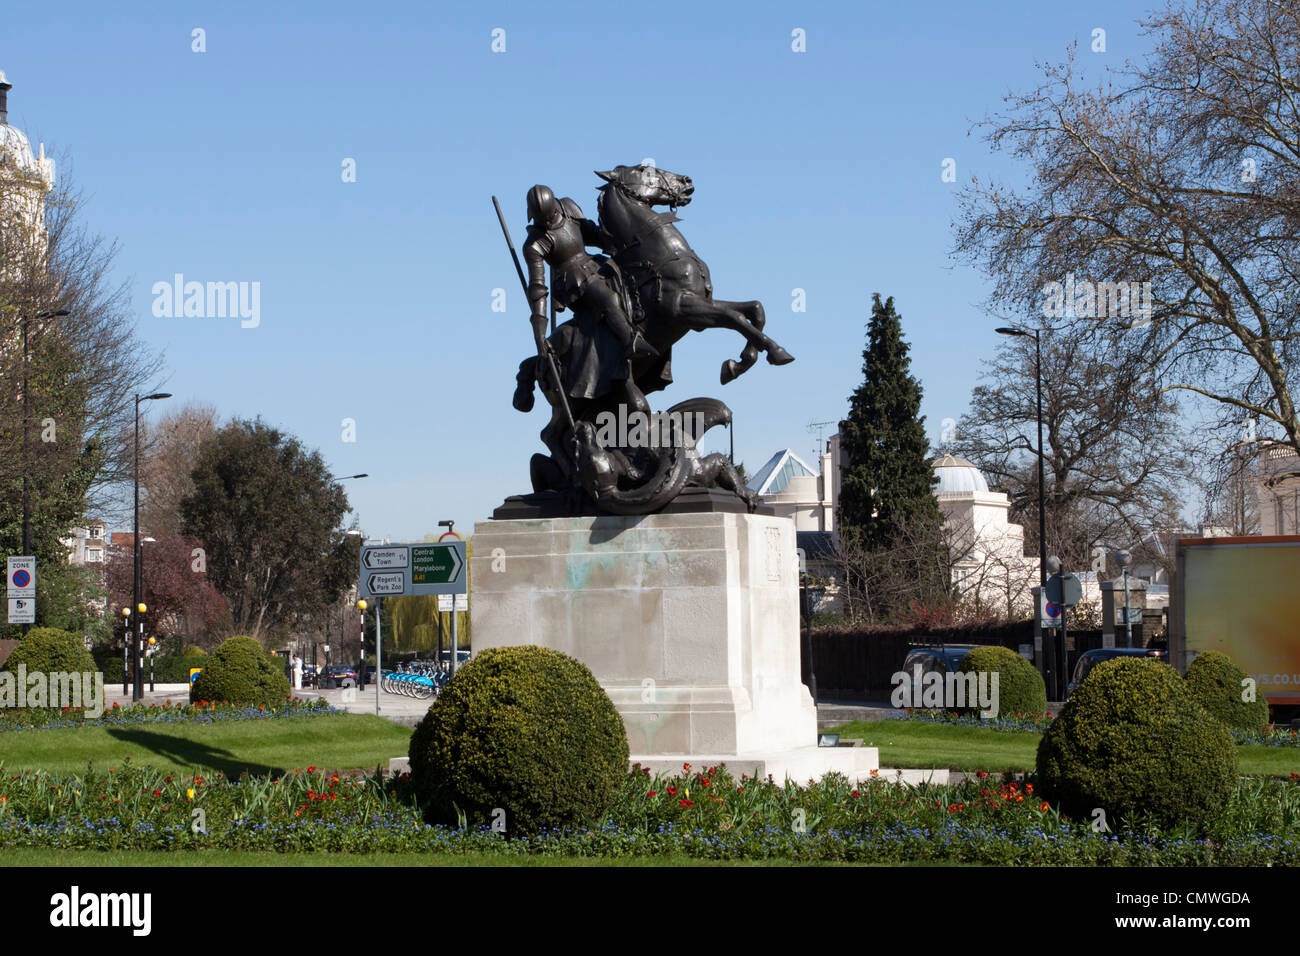 St George slaying the dragon, monument to those killed in both World Wars, St Johns Wood, London, England, UK - Stock Image